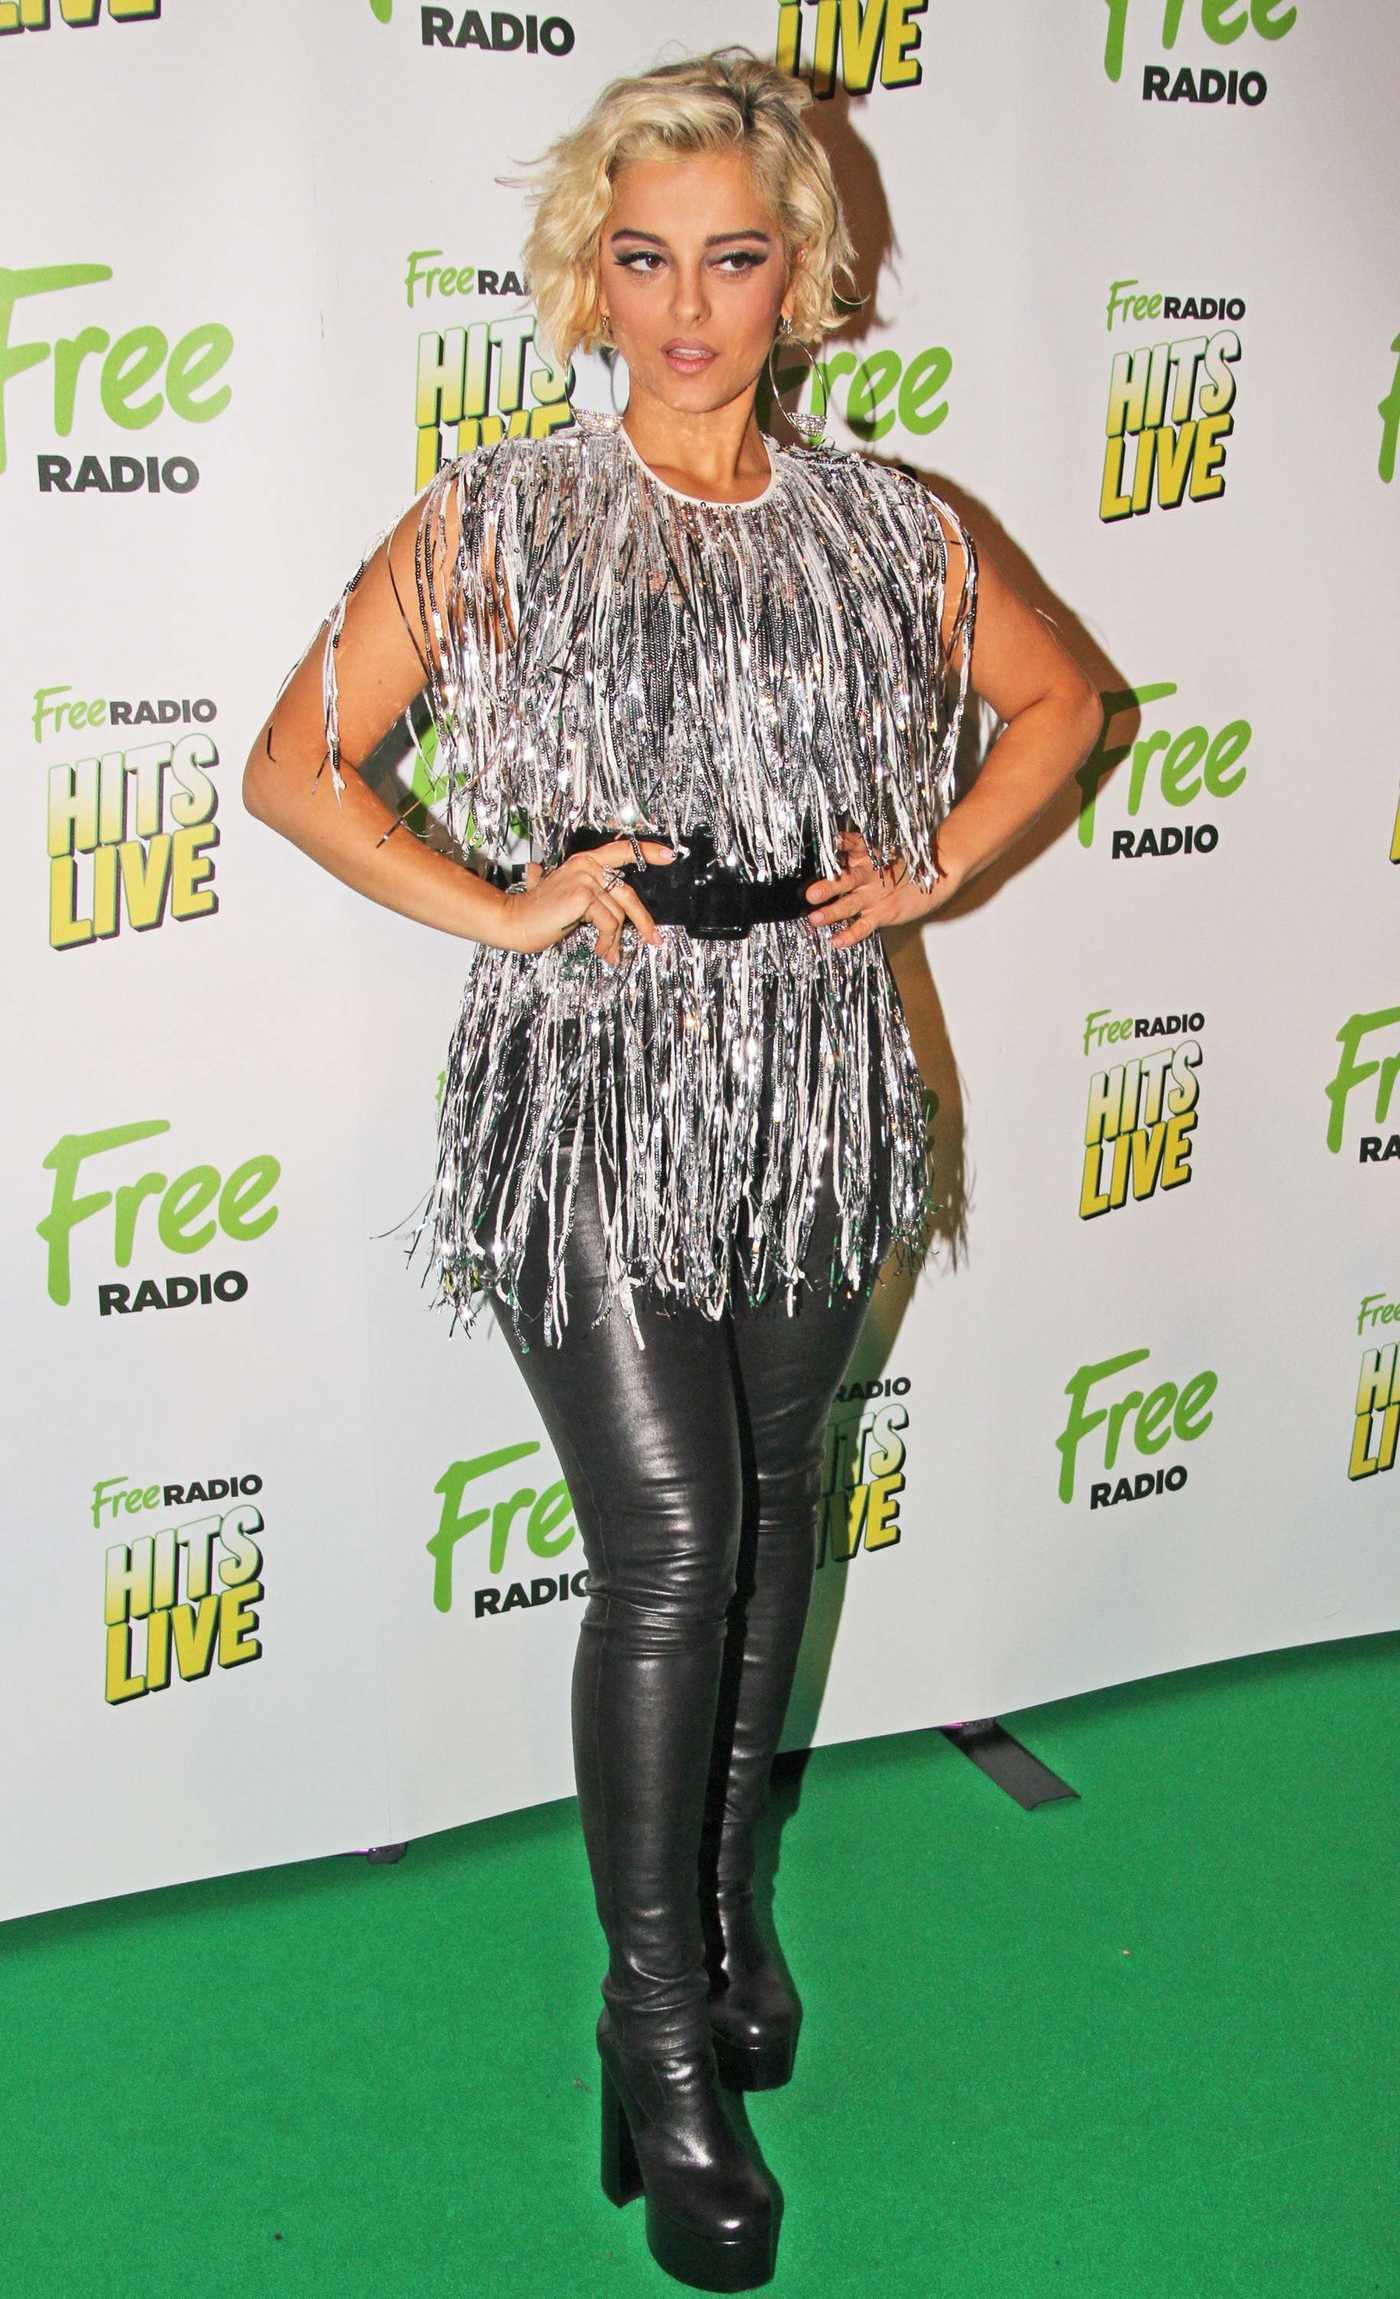 Bebe Rexha Attends Free Radio Live 2018 Concert at the Genting Arena in Birmingham 11/24/2018